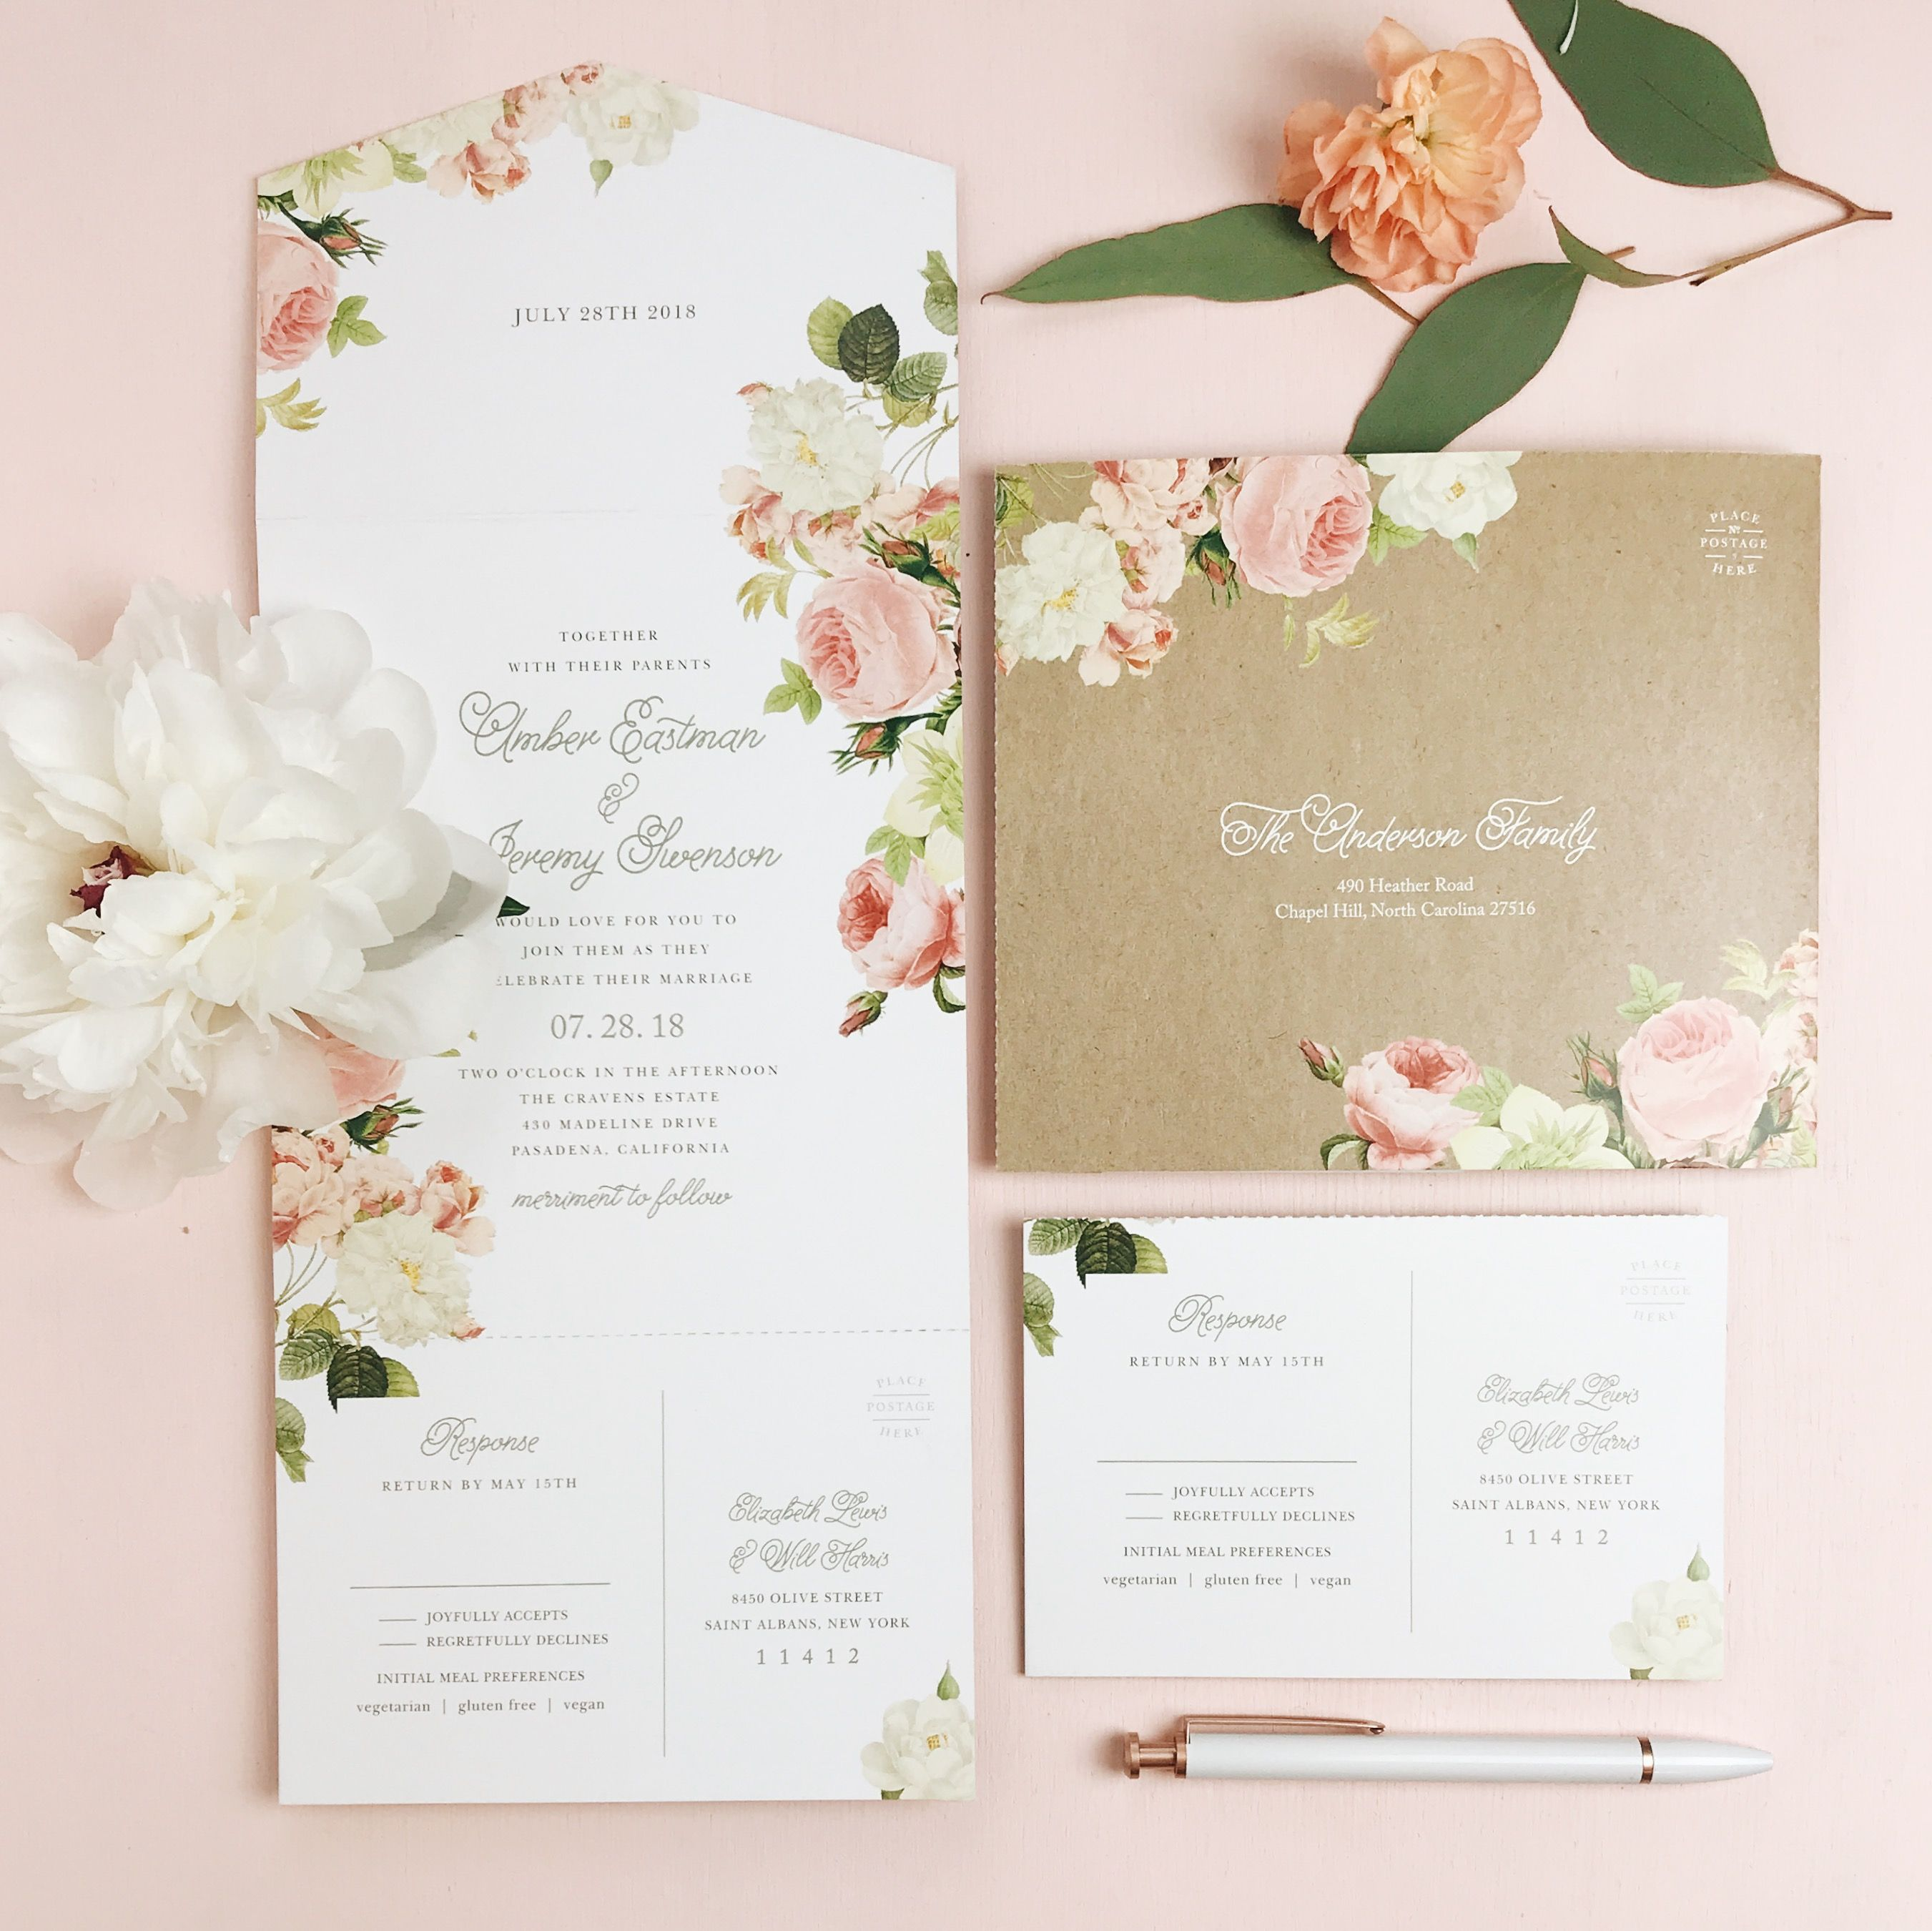 Our New Obsession Seal And Send Wedding Invitations Dainty And Adorab Discount Wedding Invitations Floral Wedding Invitation Card Floral Wedding Invitations